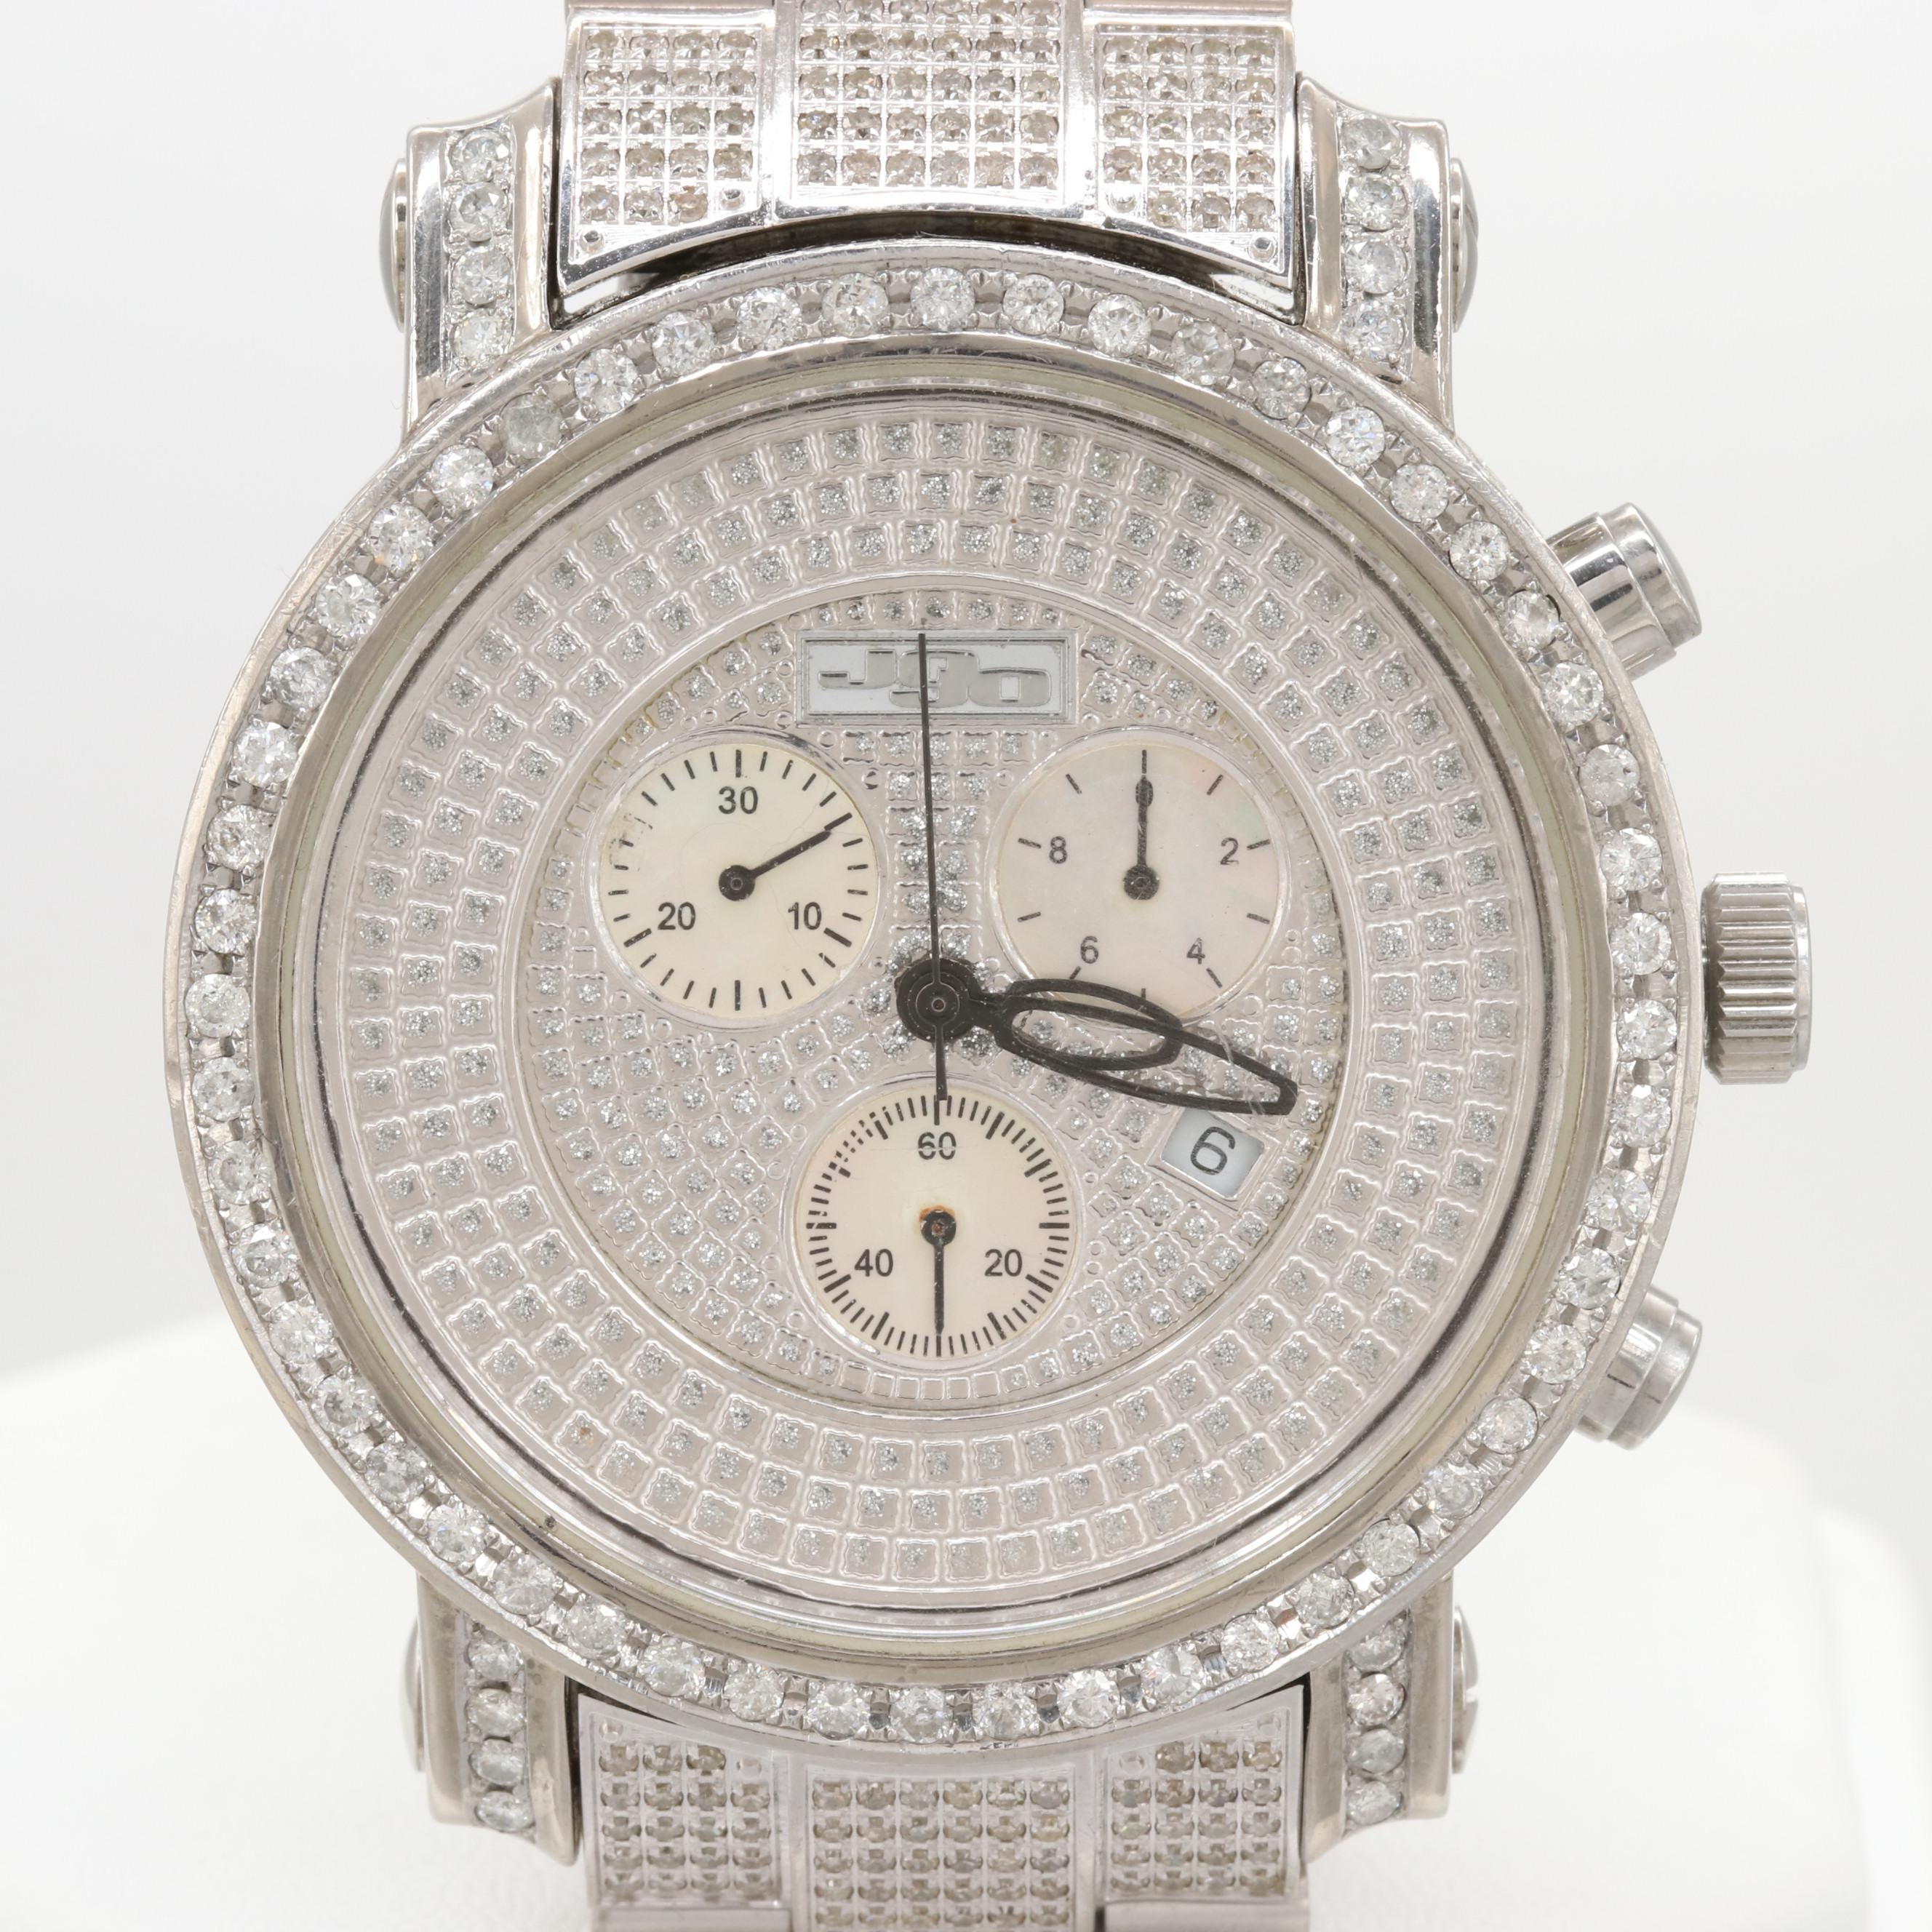 JoJo 7.93 CTW Diamond and Mother of Pearl Quartz Chronograph Wristwatch